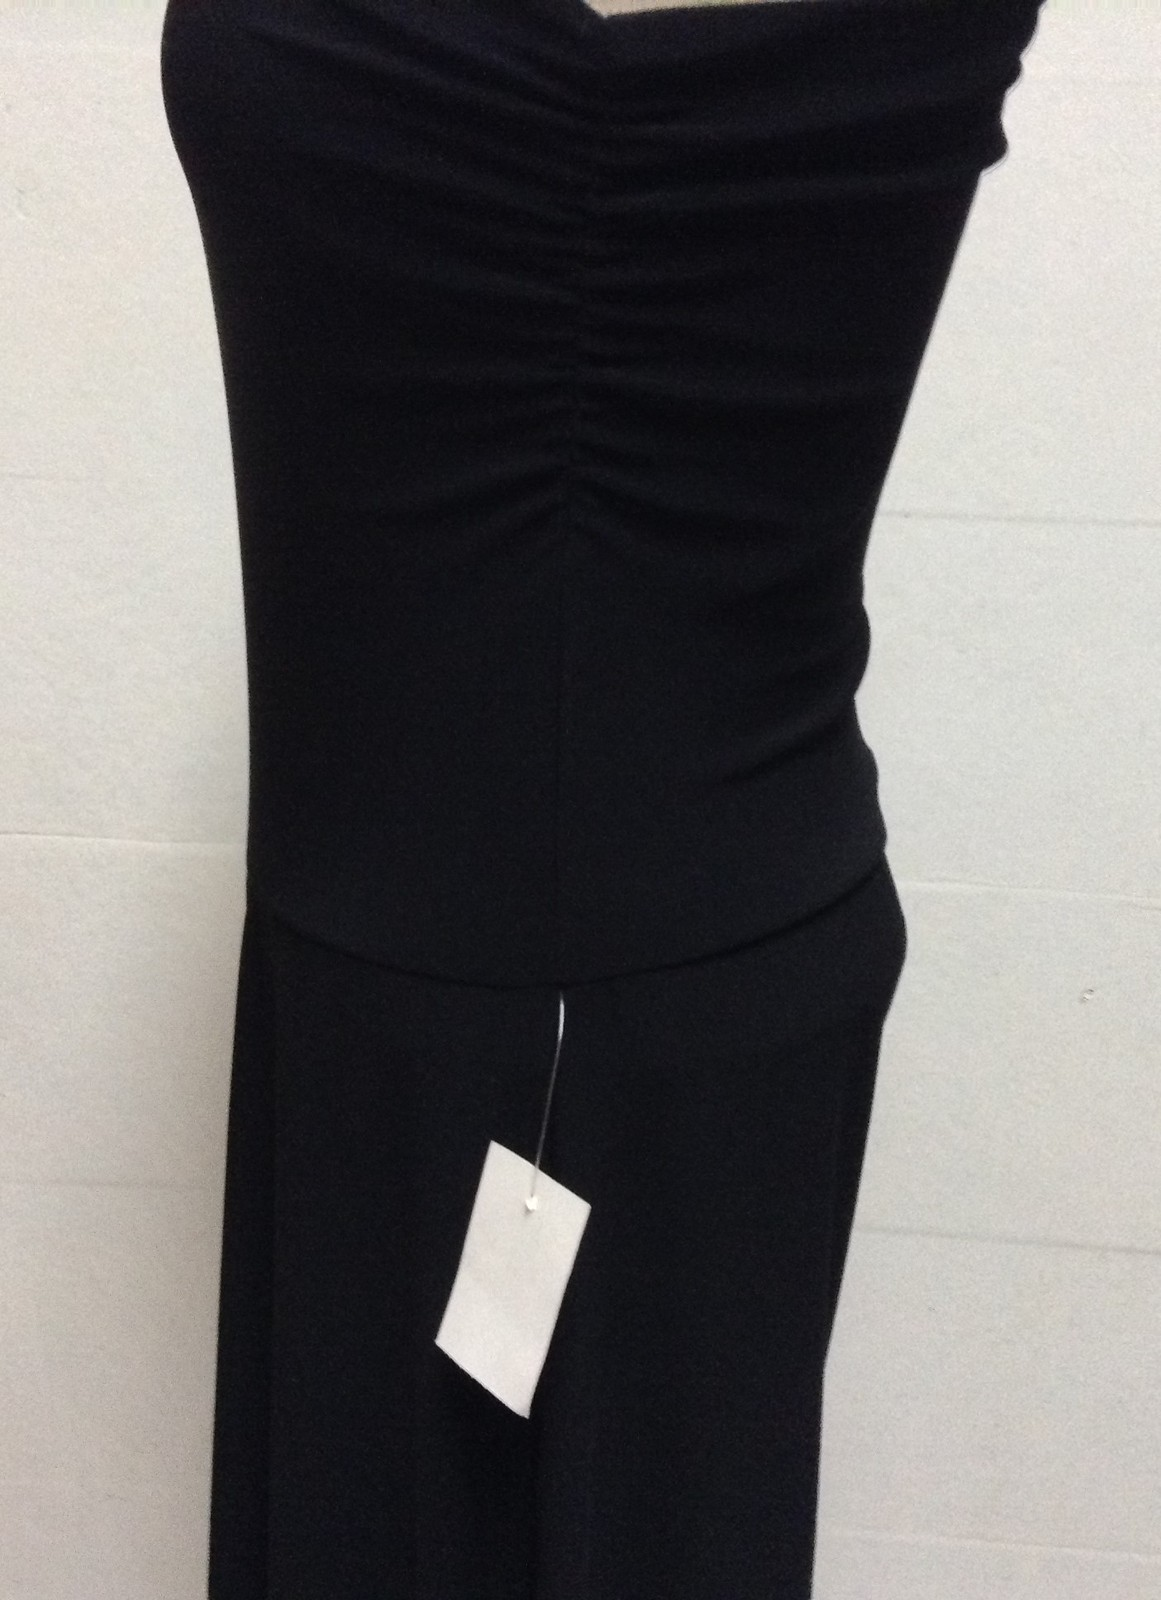 Charlotte Russe One Piece Halter Pant Dress Black NWT Sz S